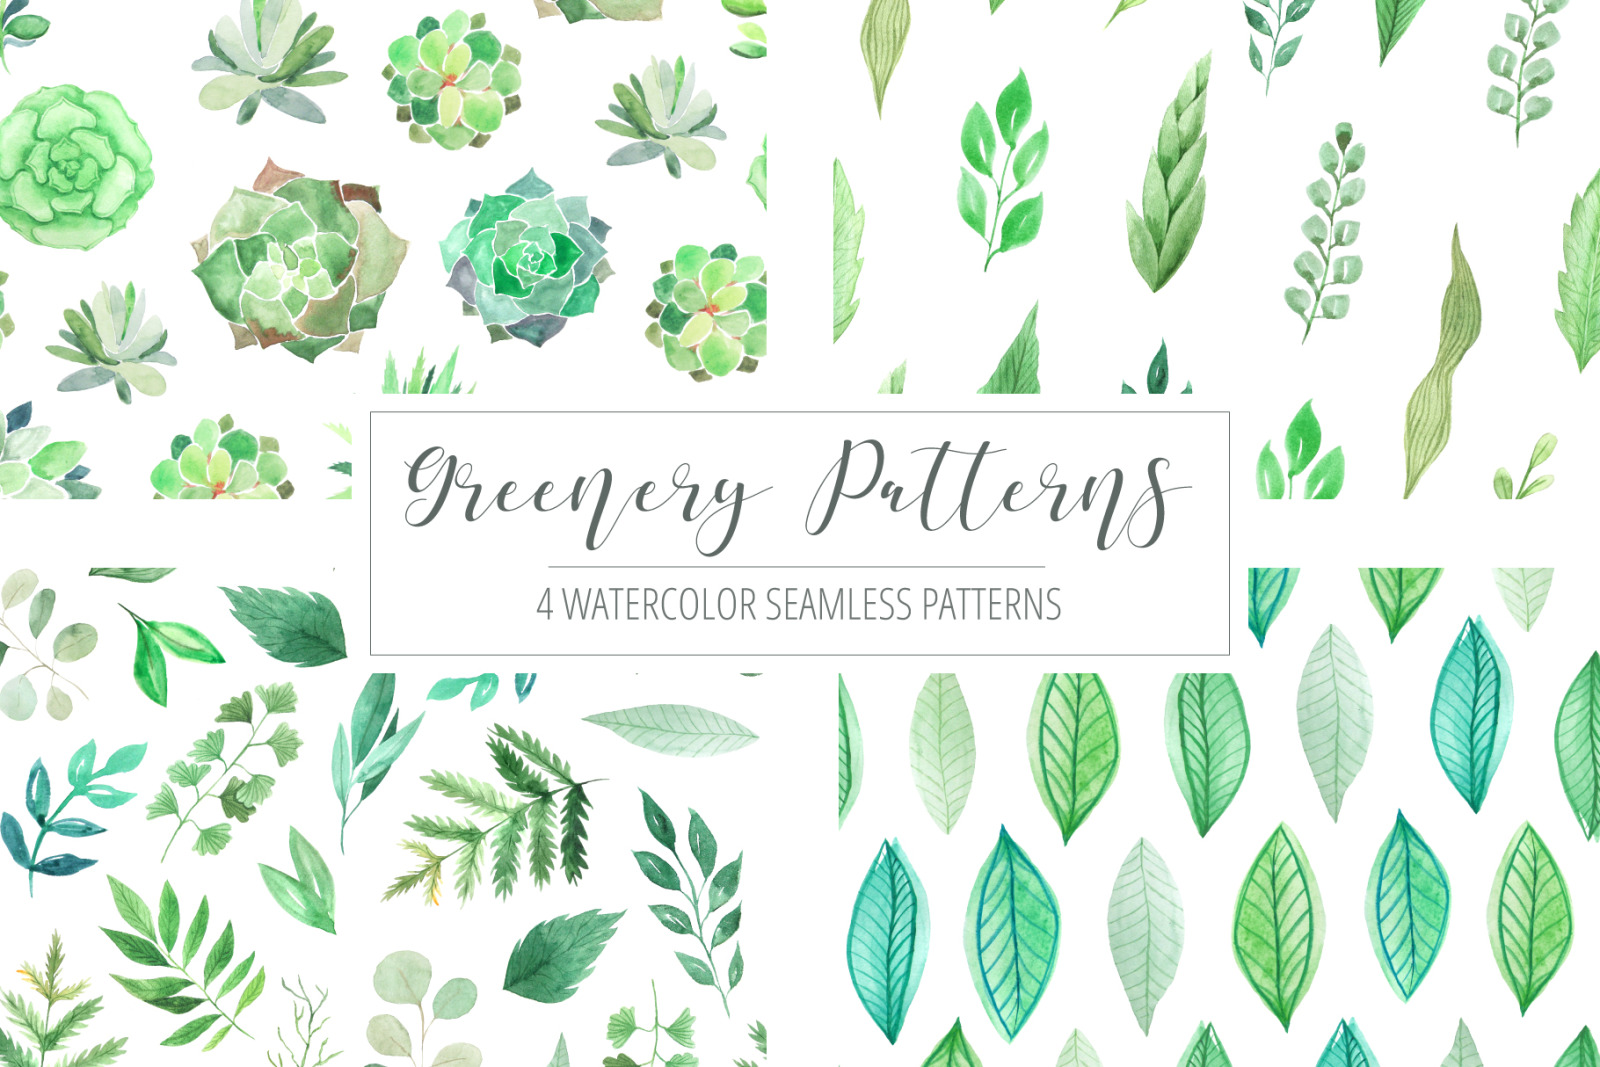 4 Watercolor Greenery Patterns